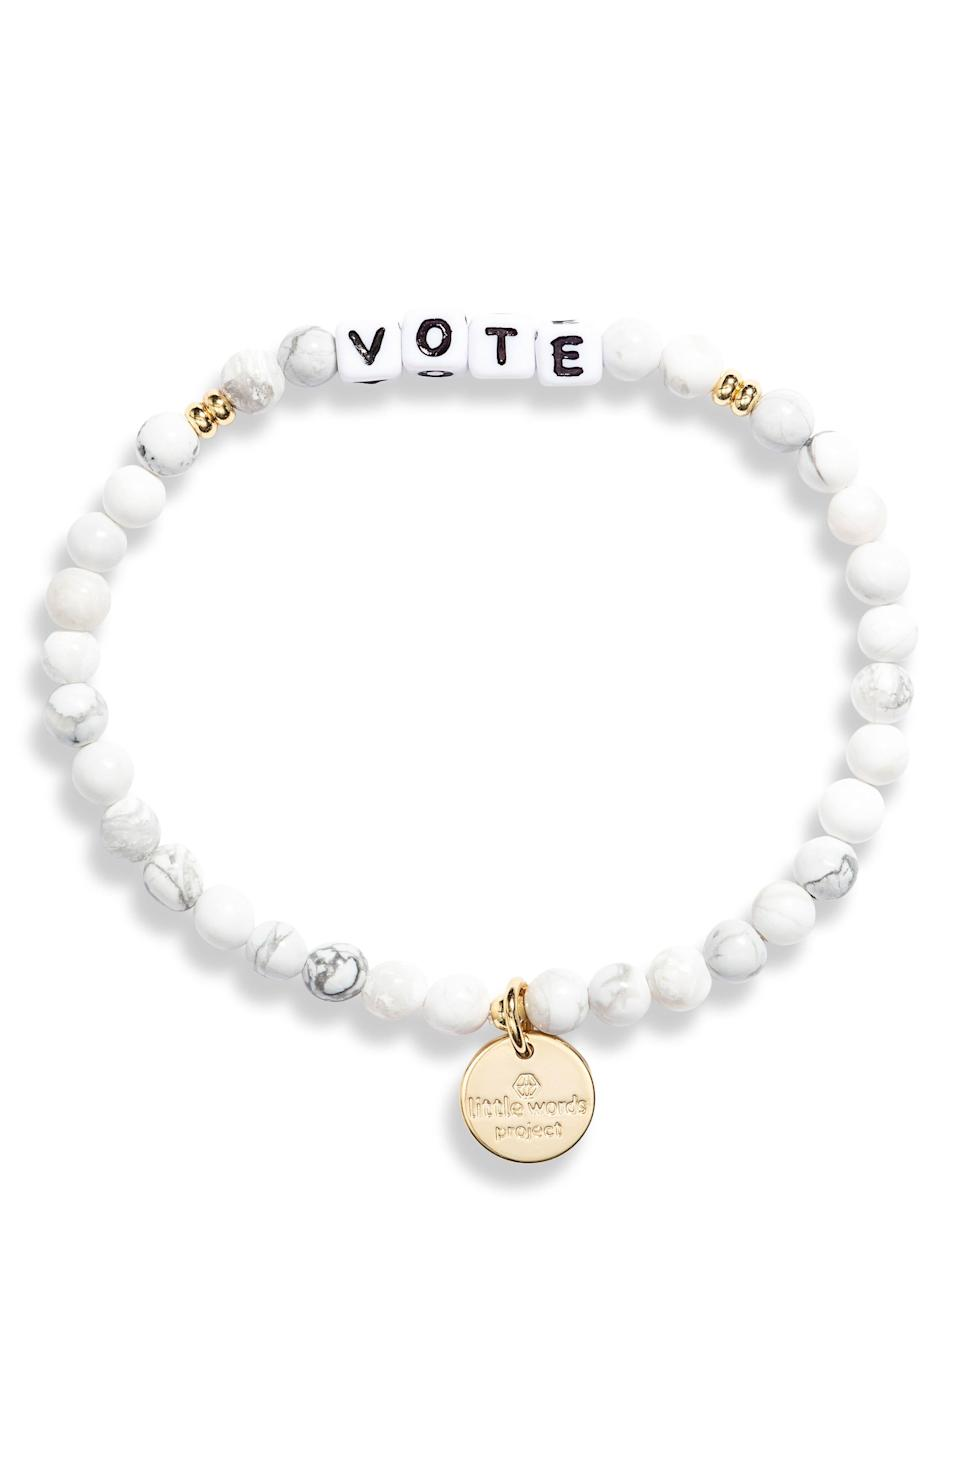 """<p><strong>LITTLE WORDS PROJECT</strong></p><p>nordstrom.com</p><p><strong>$20.00</strong></p><p><a href=""""https://go.redirectingat.com?id=74968X1596630&url=https%3A%2F%2Fwww.nordstrom.com%2Fs%2Flittle-words-project-vote-beaded-stretch-bracelet%2F5699805&sref=https%3A%2F%2Fwww.oprahmag.com%2Fstyle%2Fg33646325%2Fvote-tshirts-merch%2F"""" rel=""""nofollow noopener"""" target=""""_blank"""" data-ylk=""""slk:Shop Now"""" class=""""link rapid-noclick-resp"""">Shop Now</a></p><p>Add to your bracelet stack with this white agate-beaded bracelet with gold accents and """"vote"""" lettering.</p>"""